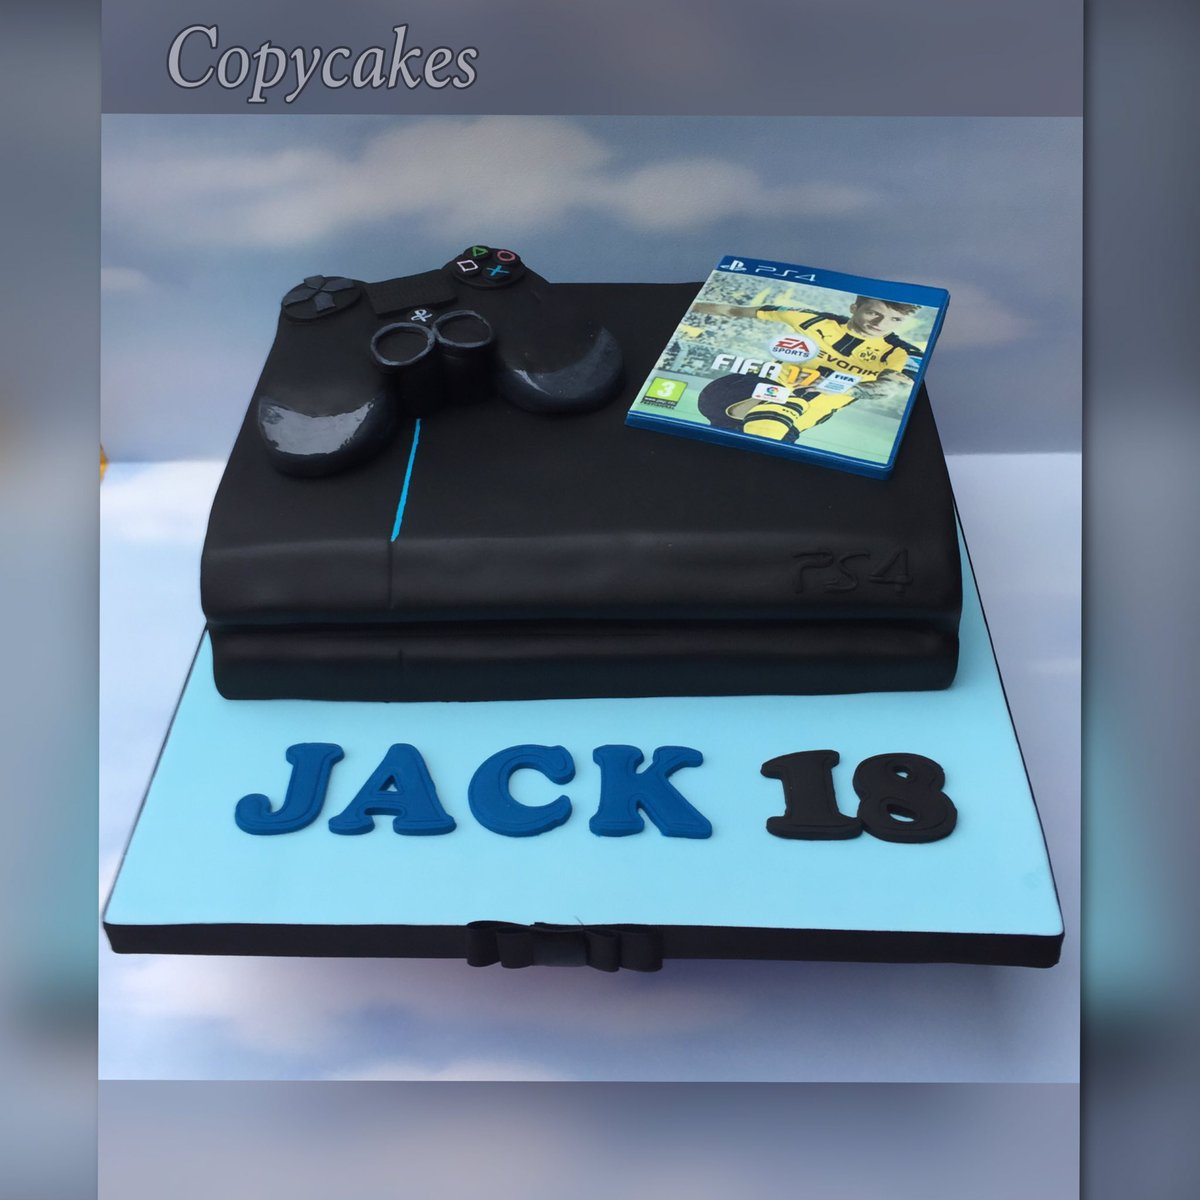 Copy Cakes By Wendy On Twitter Playstation4 Fifa17 Cake Birthday